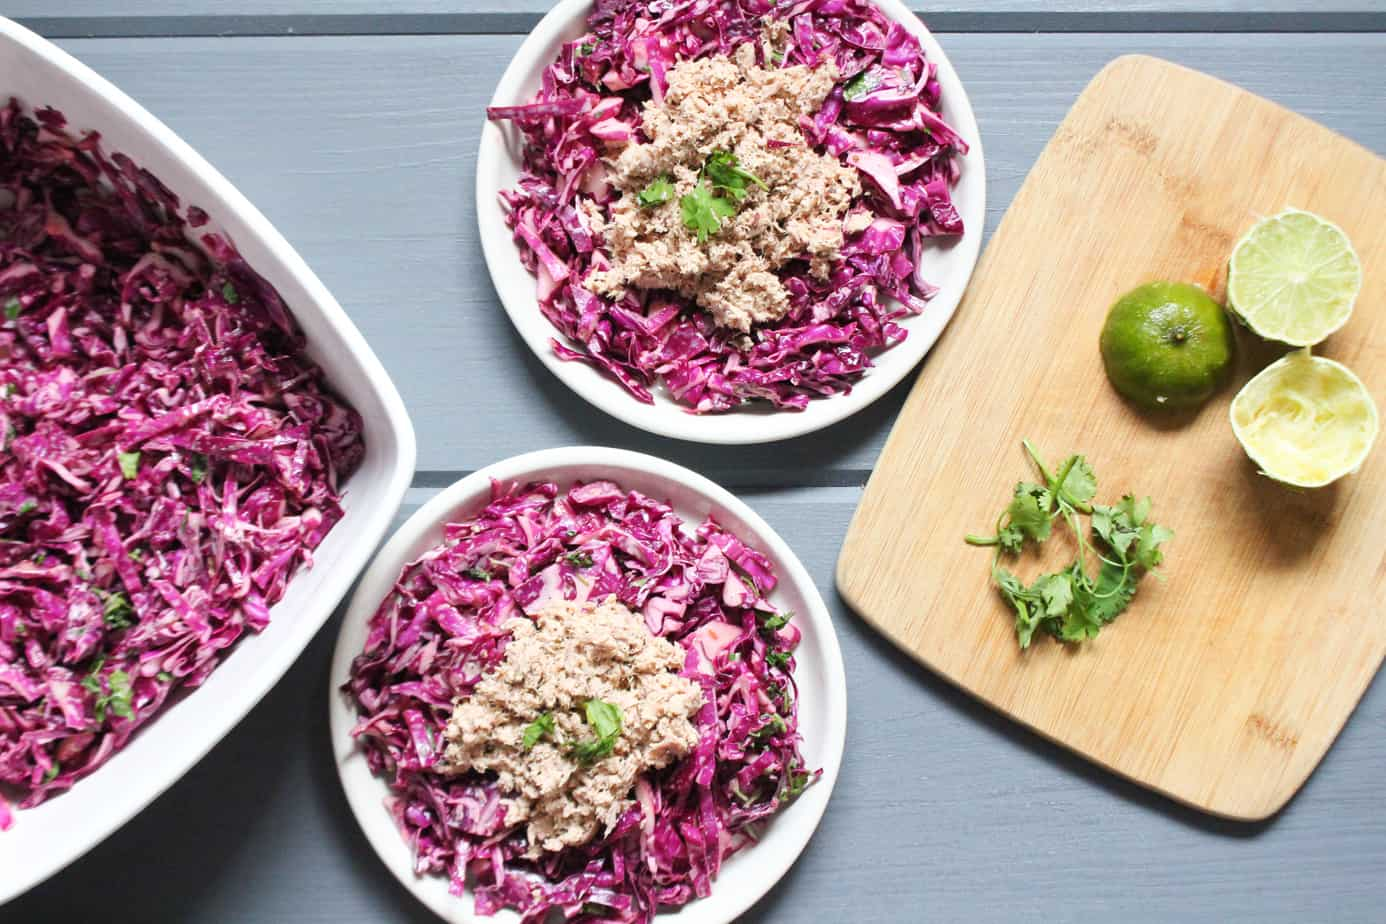 Easy Whole30 Meal Tuna and Cabbage Slaw | Frugal Nutrition